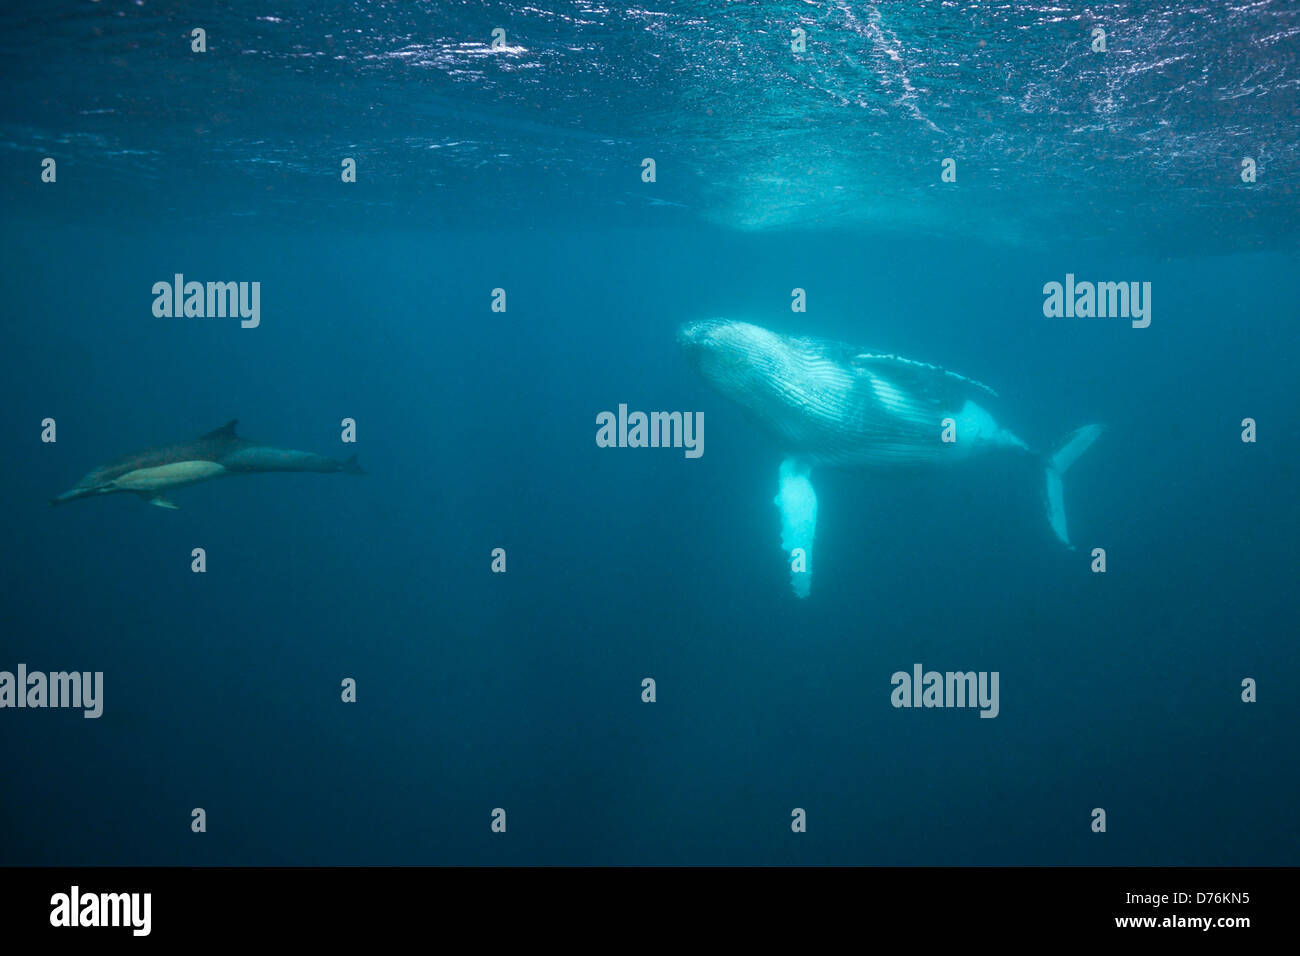 Humpback Whale, Megaptera novaeangliae, Indian Ocean, Wild Coast, South Africa - Stock Image